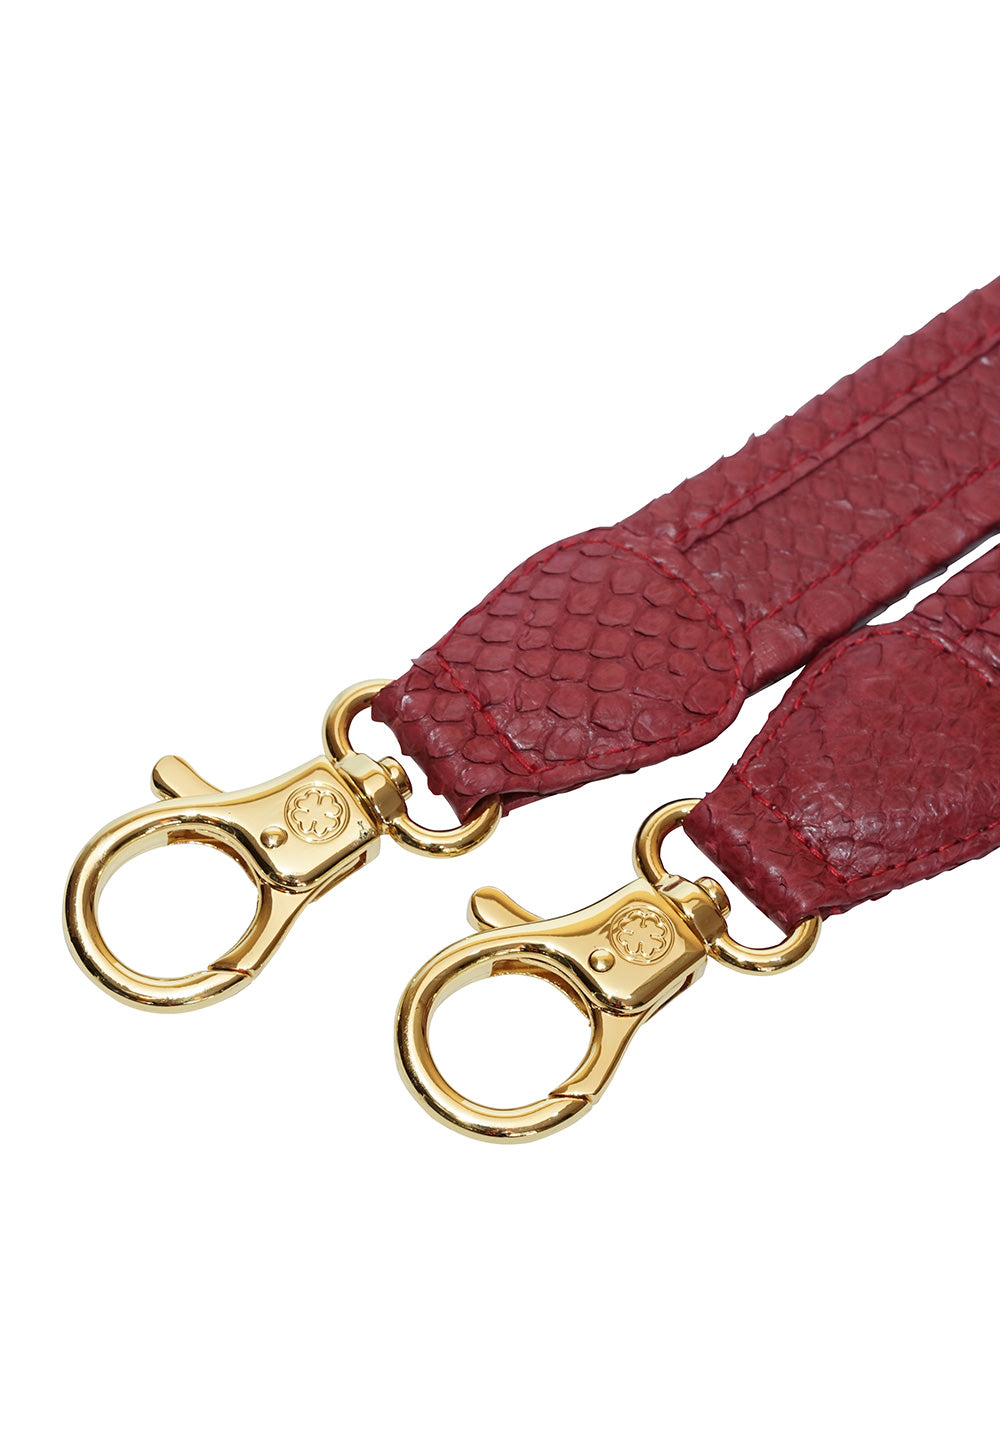 Python Skin Leather Strap (Burgundy)